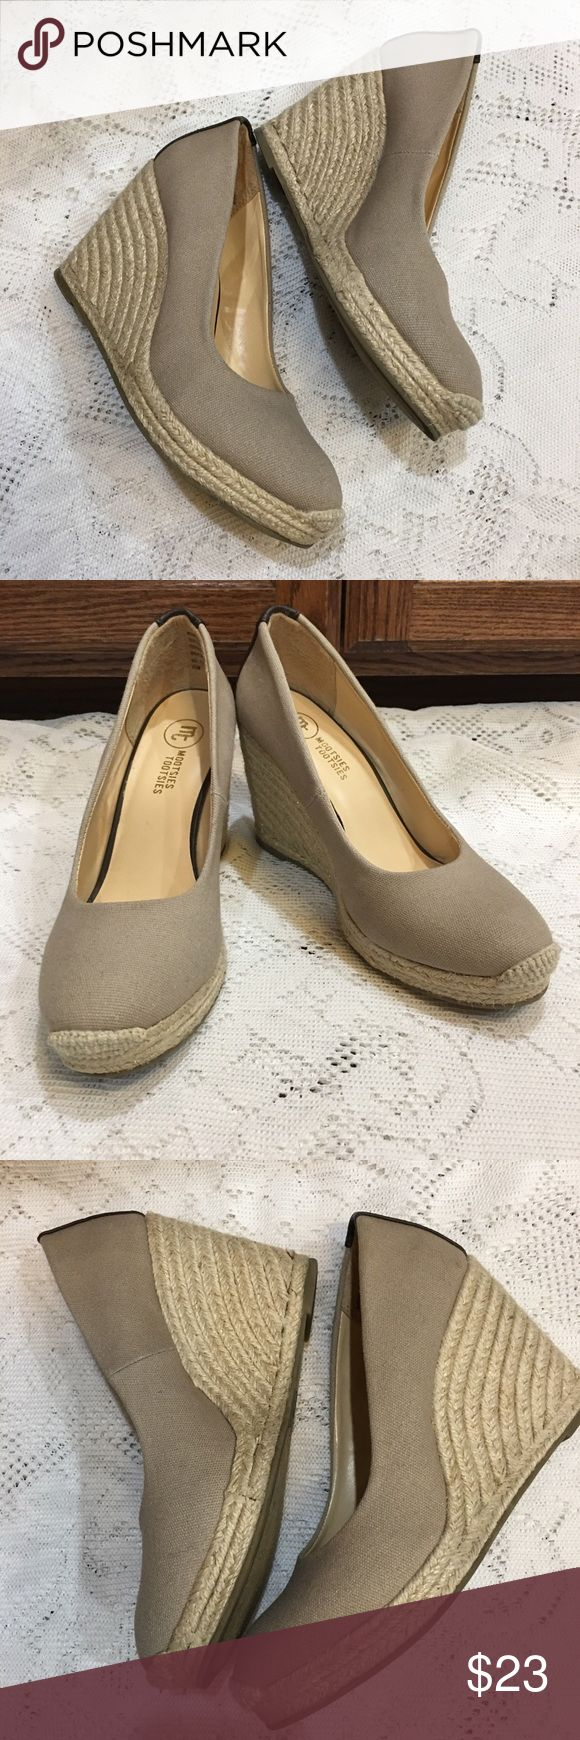 """Mootsies Tootsies wedge espadrille shoes. Sz 8.5🍷 Mootsies Tootsies wedge espadrille ladies shoes in EUC. Taupe canvas with dark brown faux leather patch on backs. 4"""" heel with a 3/4"""" platform which gives you a walking heel of approx. 3 1/4"""". Size 8.5 but fit like an 8. Mootsies Tootsies Shoes Espadrilles"""